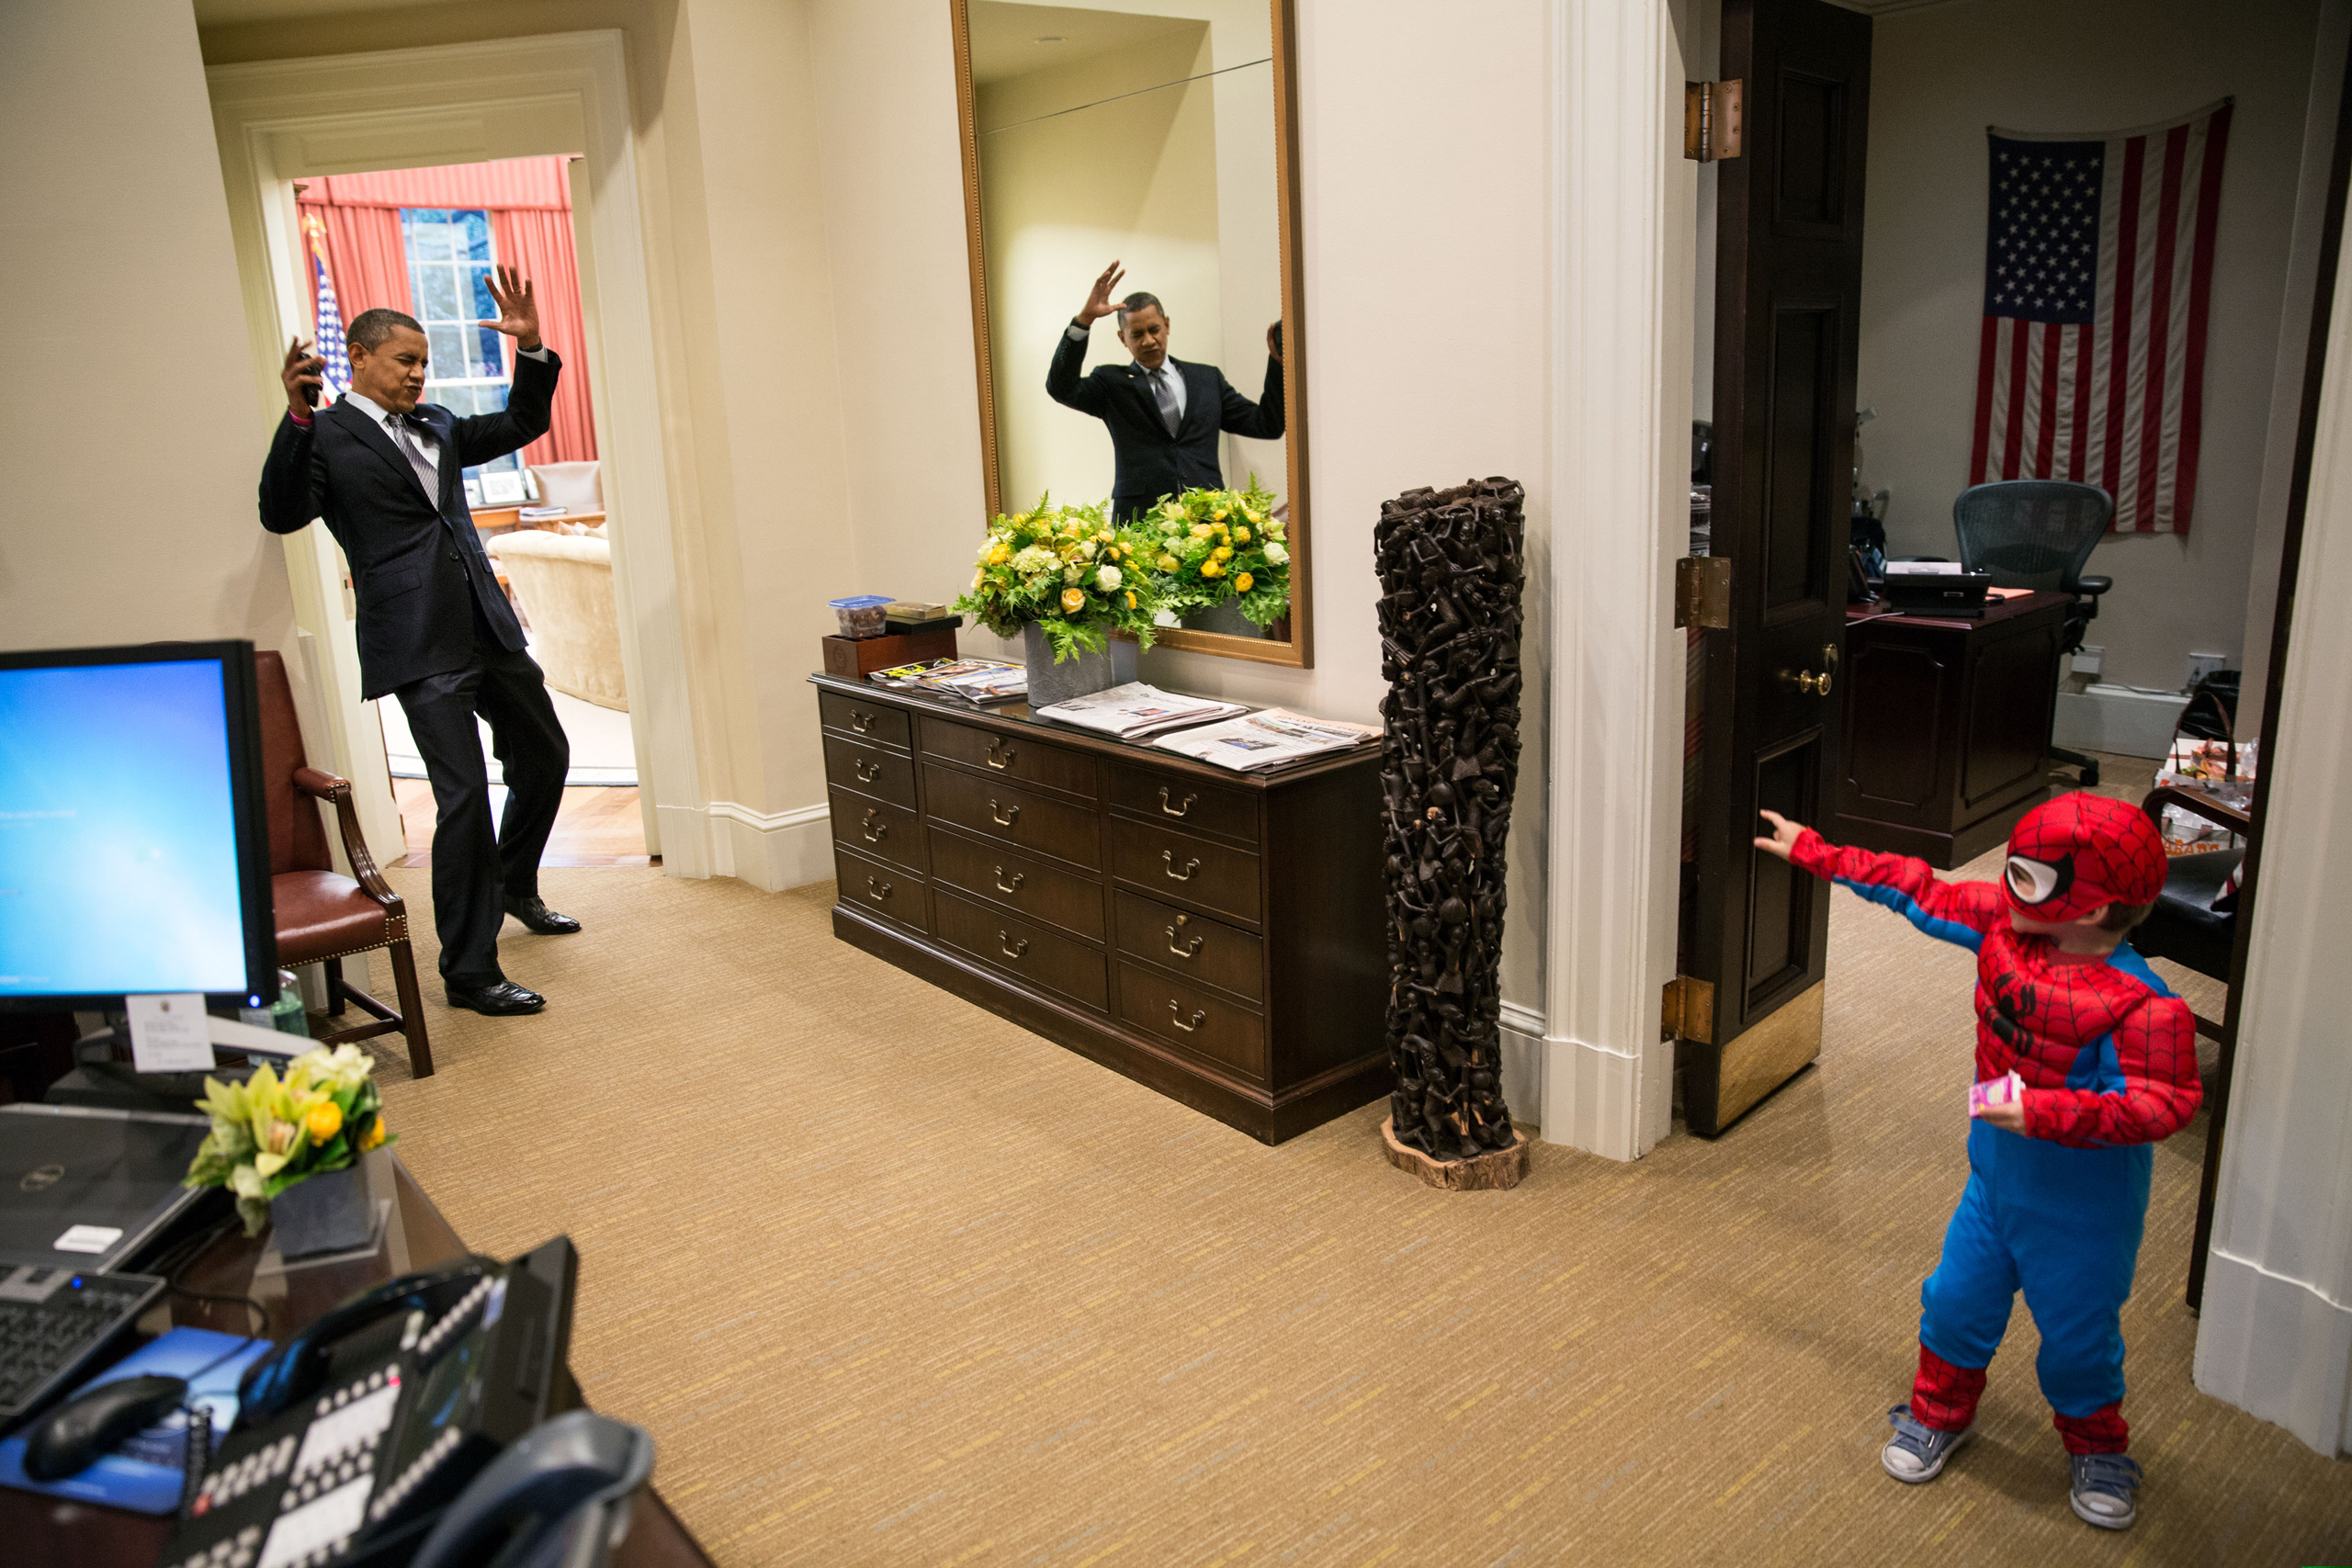 Obama pretends to be caught in Spider-Man's web as he greets Nicholas Tamarin, 3, just outside the Oval Office on Oct. 26, 2012.